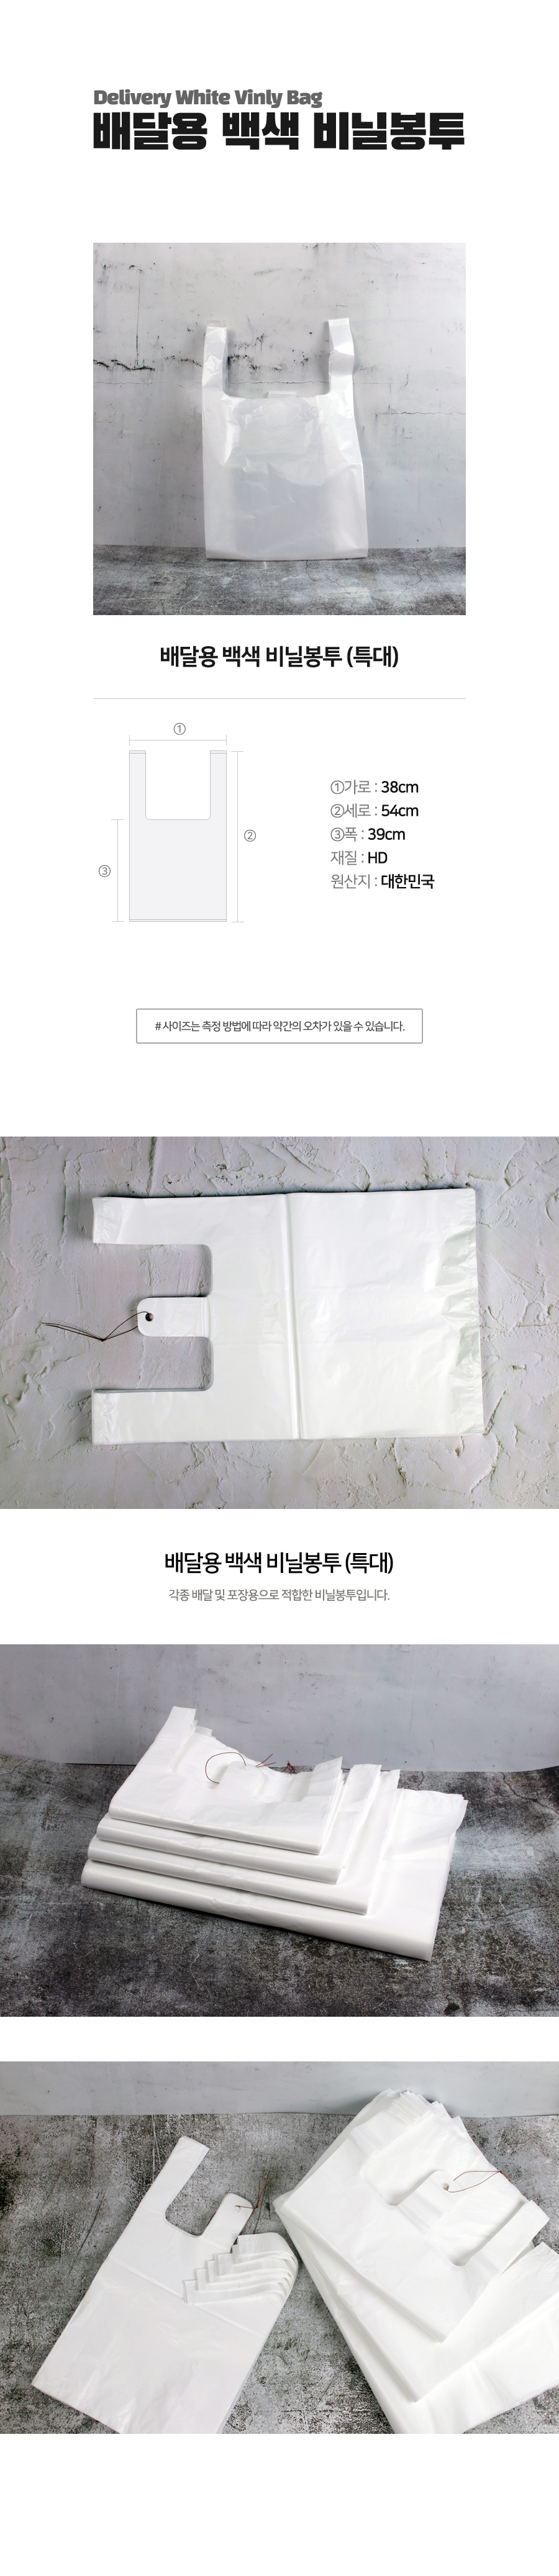 Delivery_White_Vinly_Bag_XL